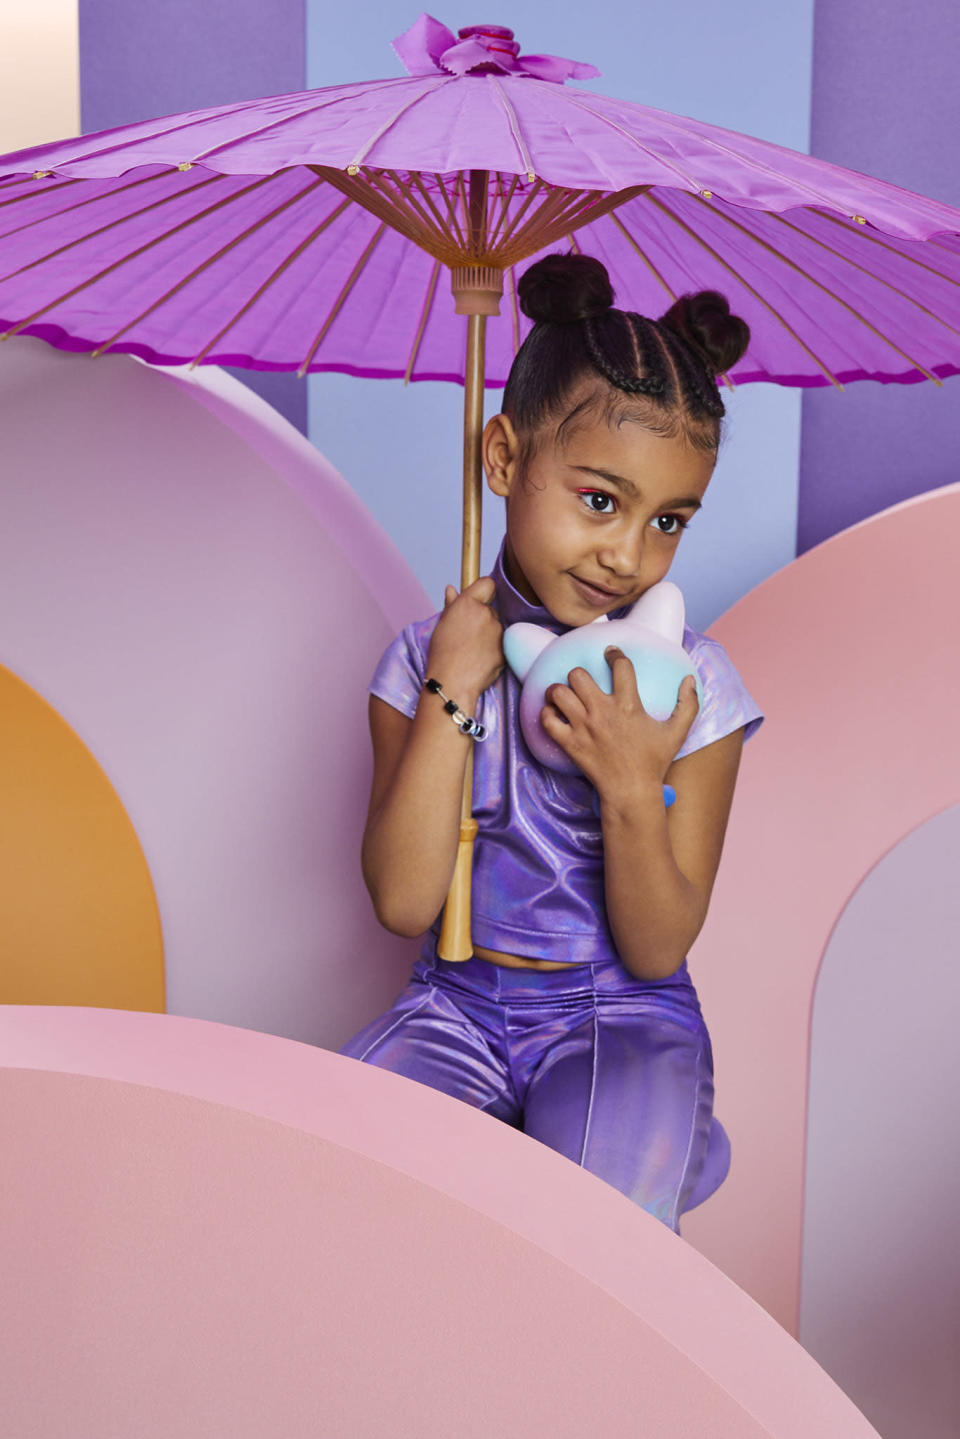 The 5-year-old is pictured with neon makeup to match her fashion. (Photo: JUCO for WWD)